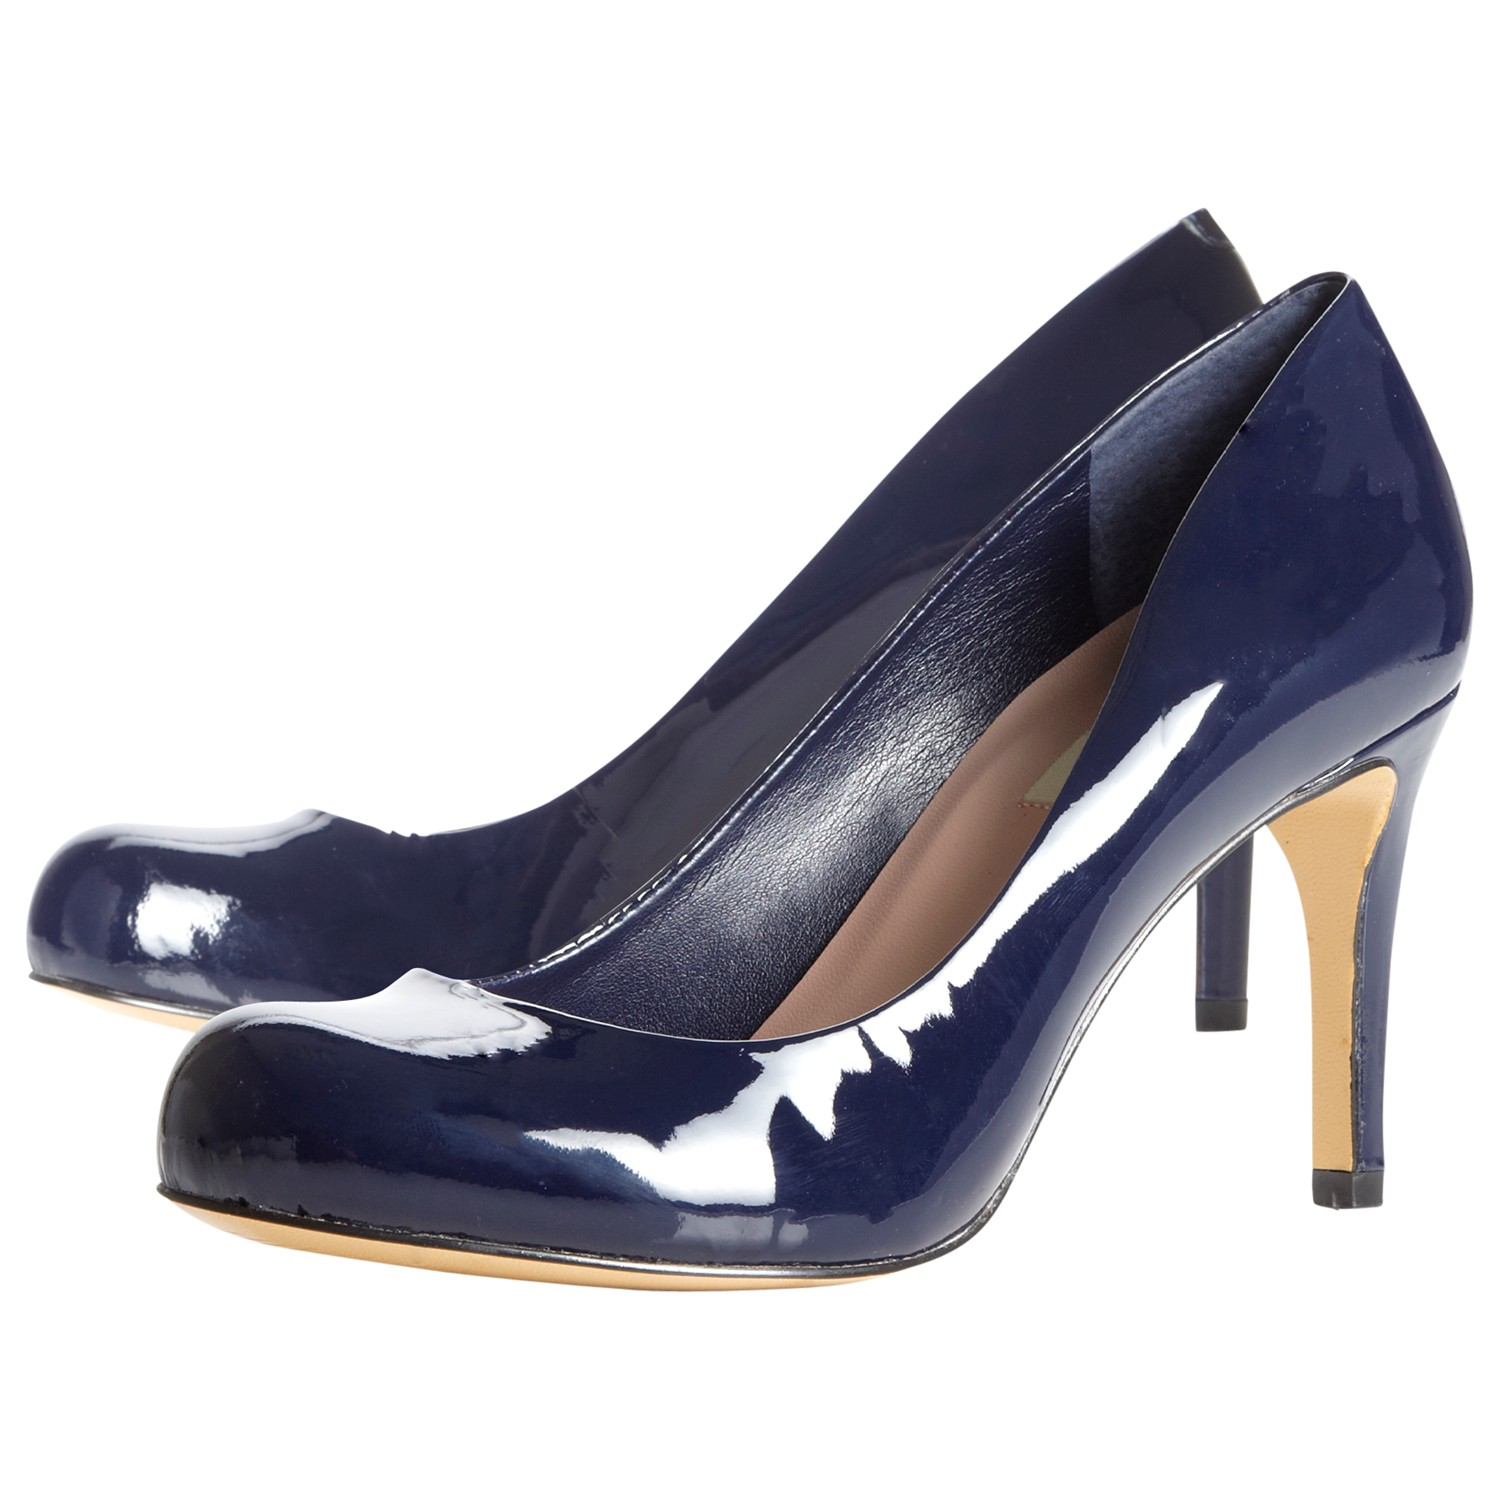 Dune Patent Leather Stiletto Heel Court Shoes in Blue - Lyst